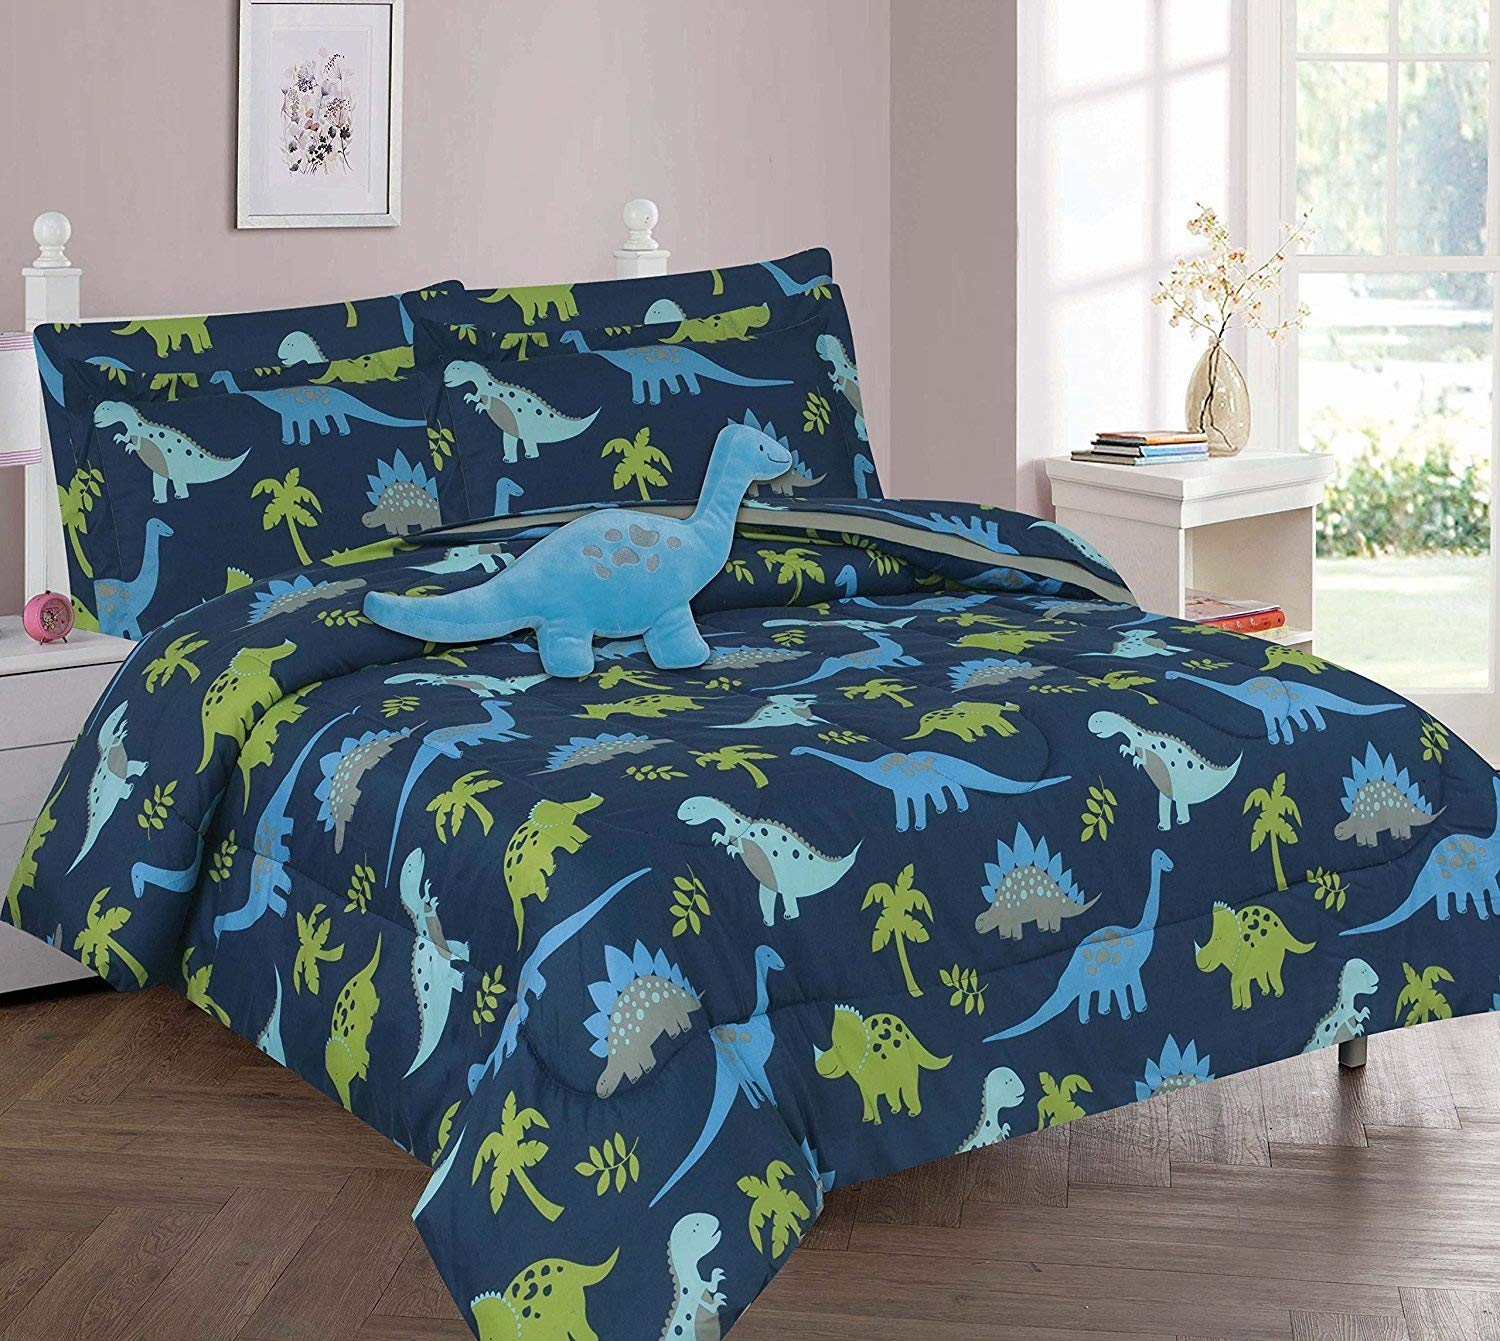 Golden Linens one Piece Kids Window Valance Printed Blue and Lime Green Dinosaur Microfiber # Blue Dinosaur Valance GoldenLinens